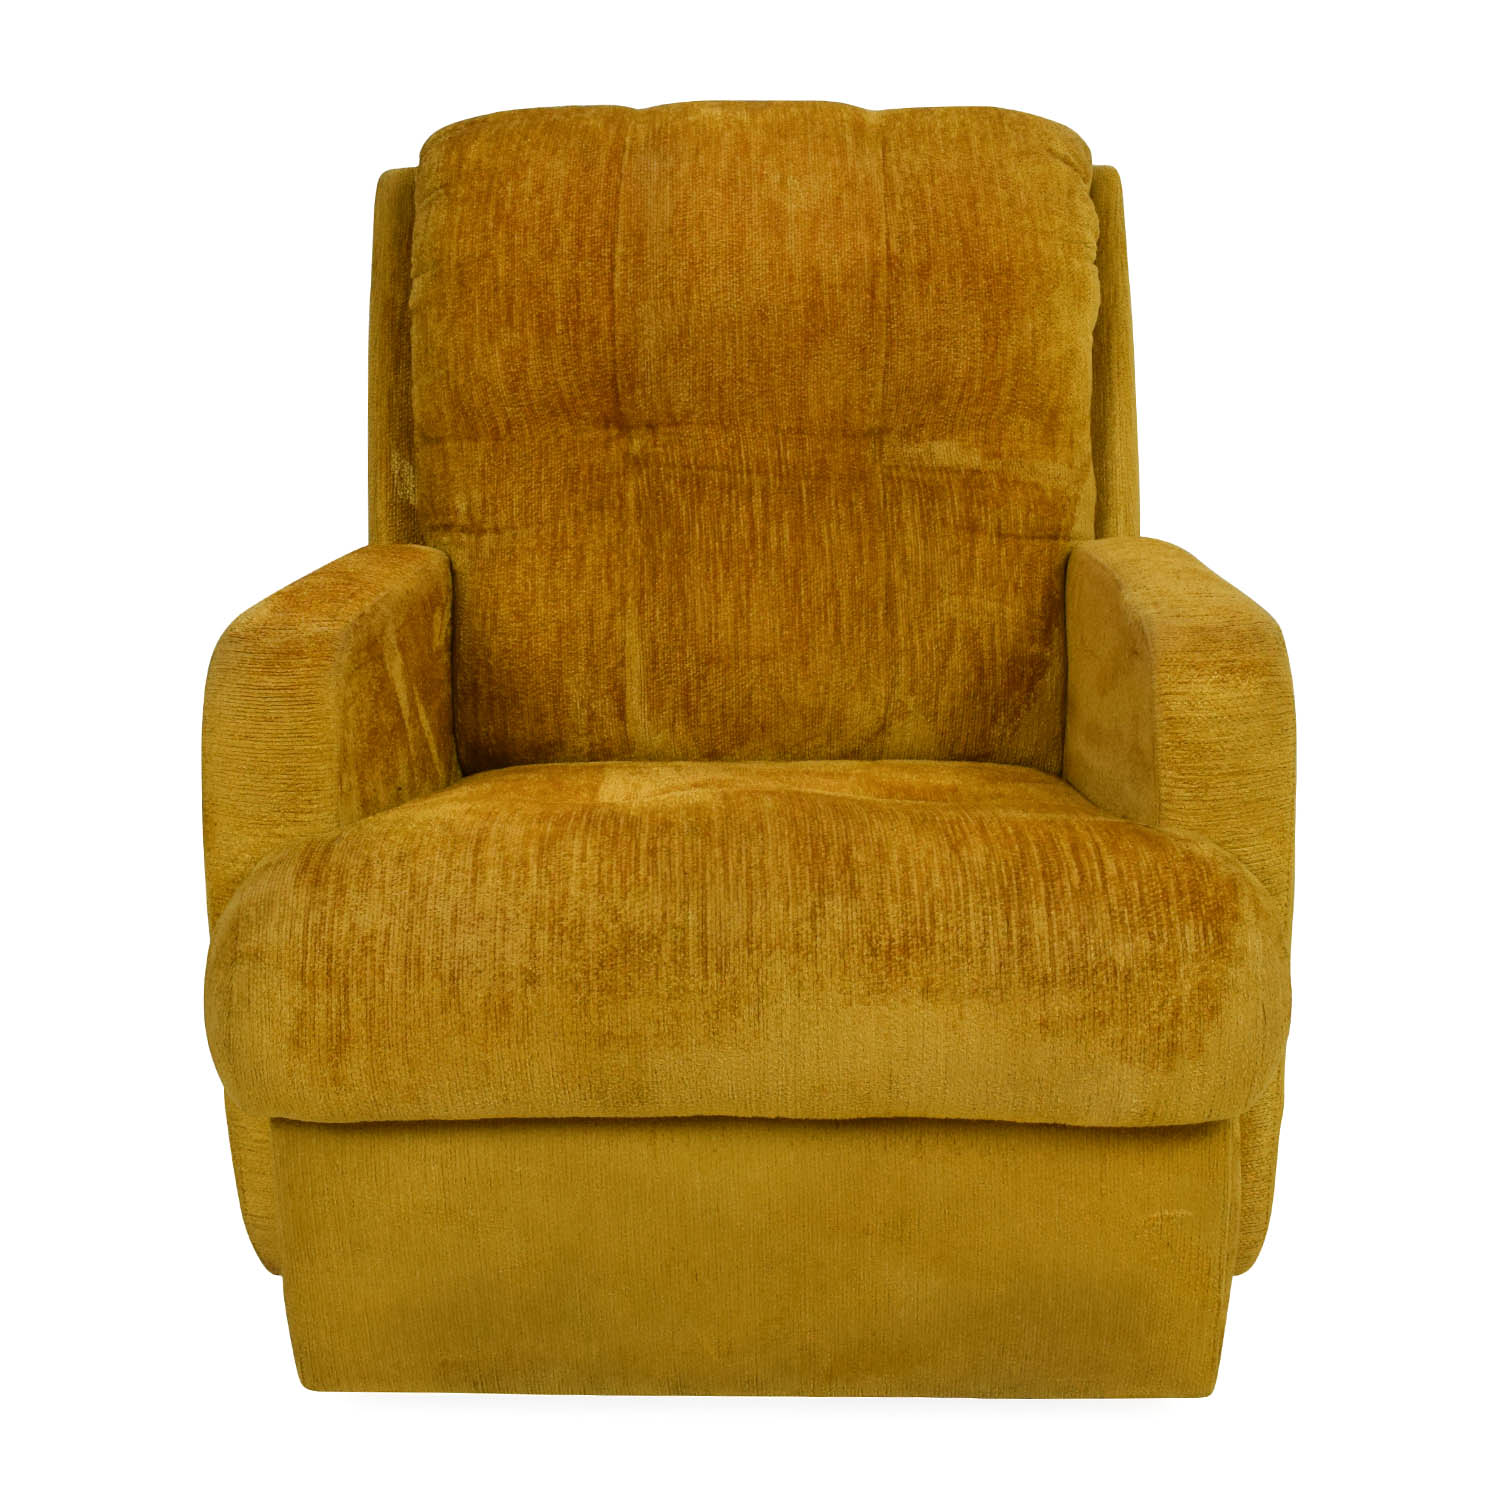 reclining chairs for sale revolving chair buy online recliners used